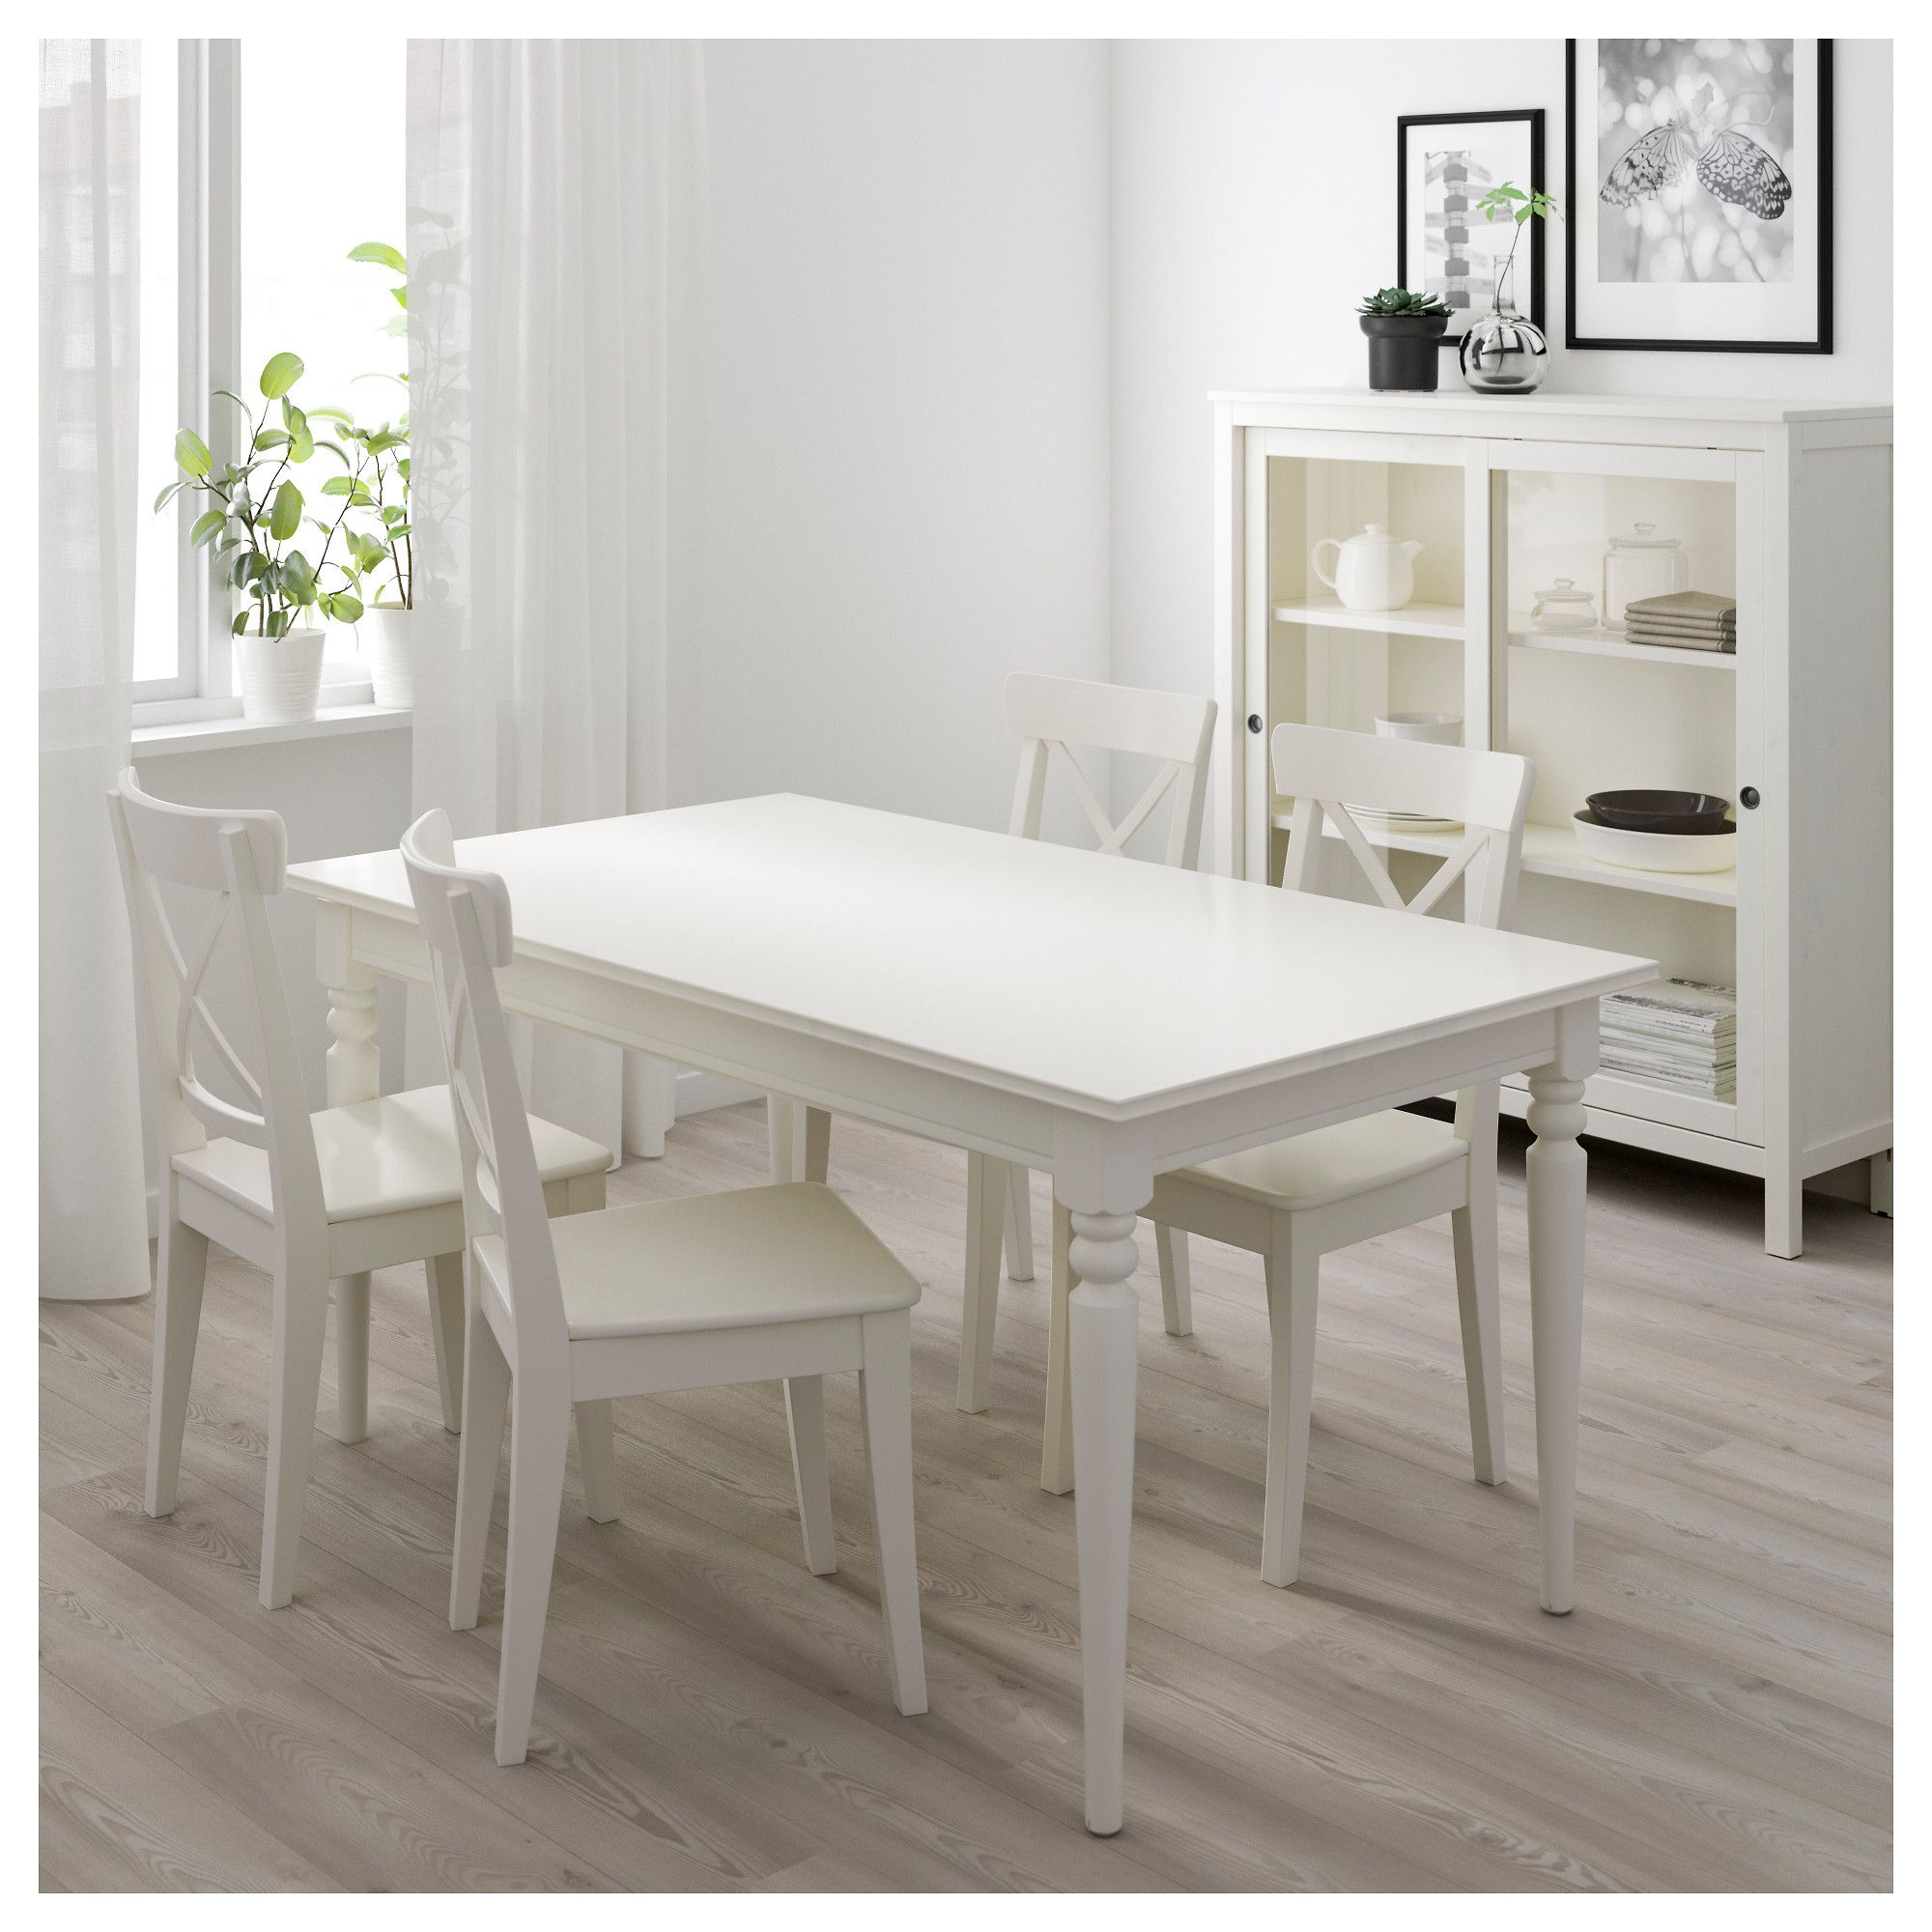 Ingatorp Extendable Table White кухни In 2019